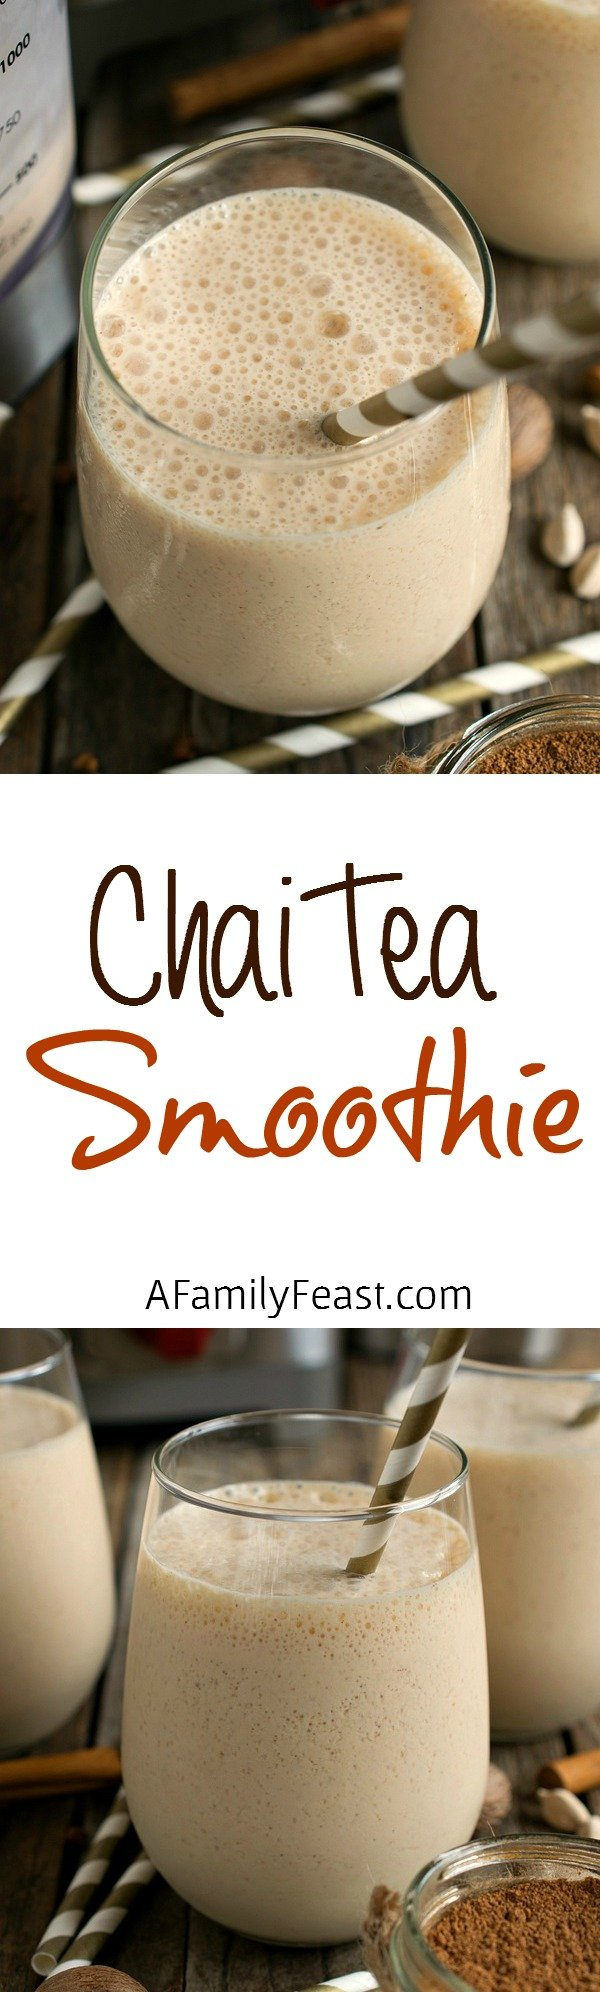 Chai Tea Smoothie - A Family Feast